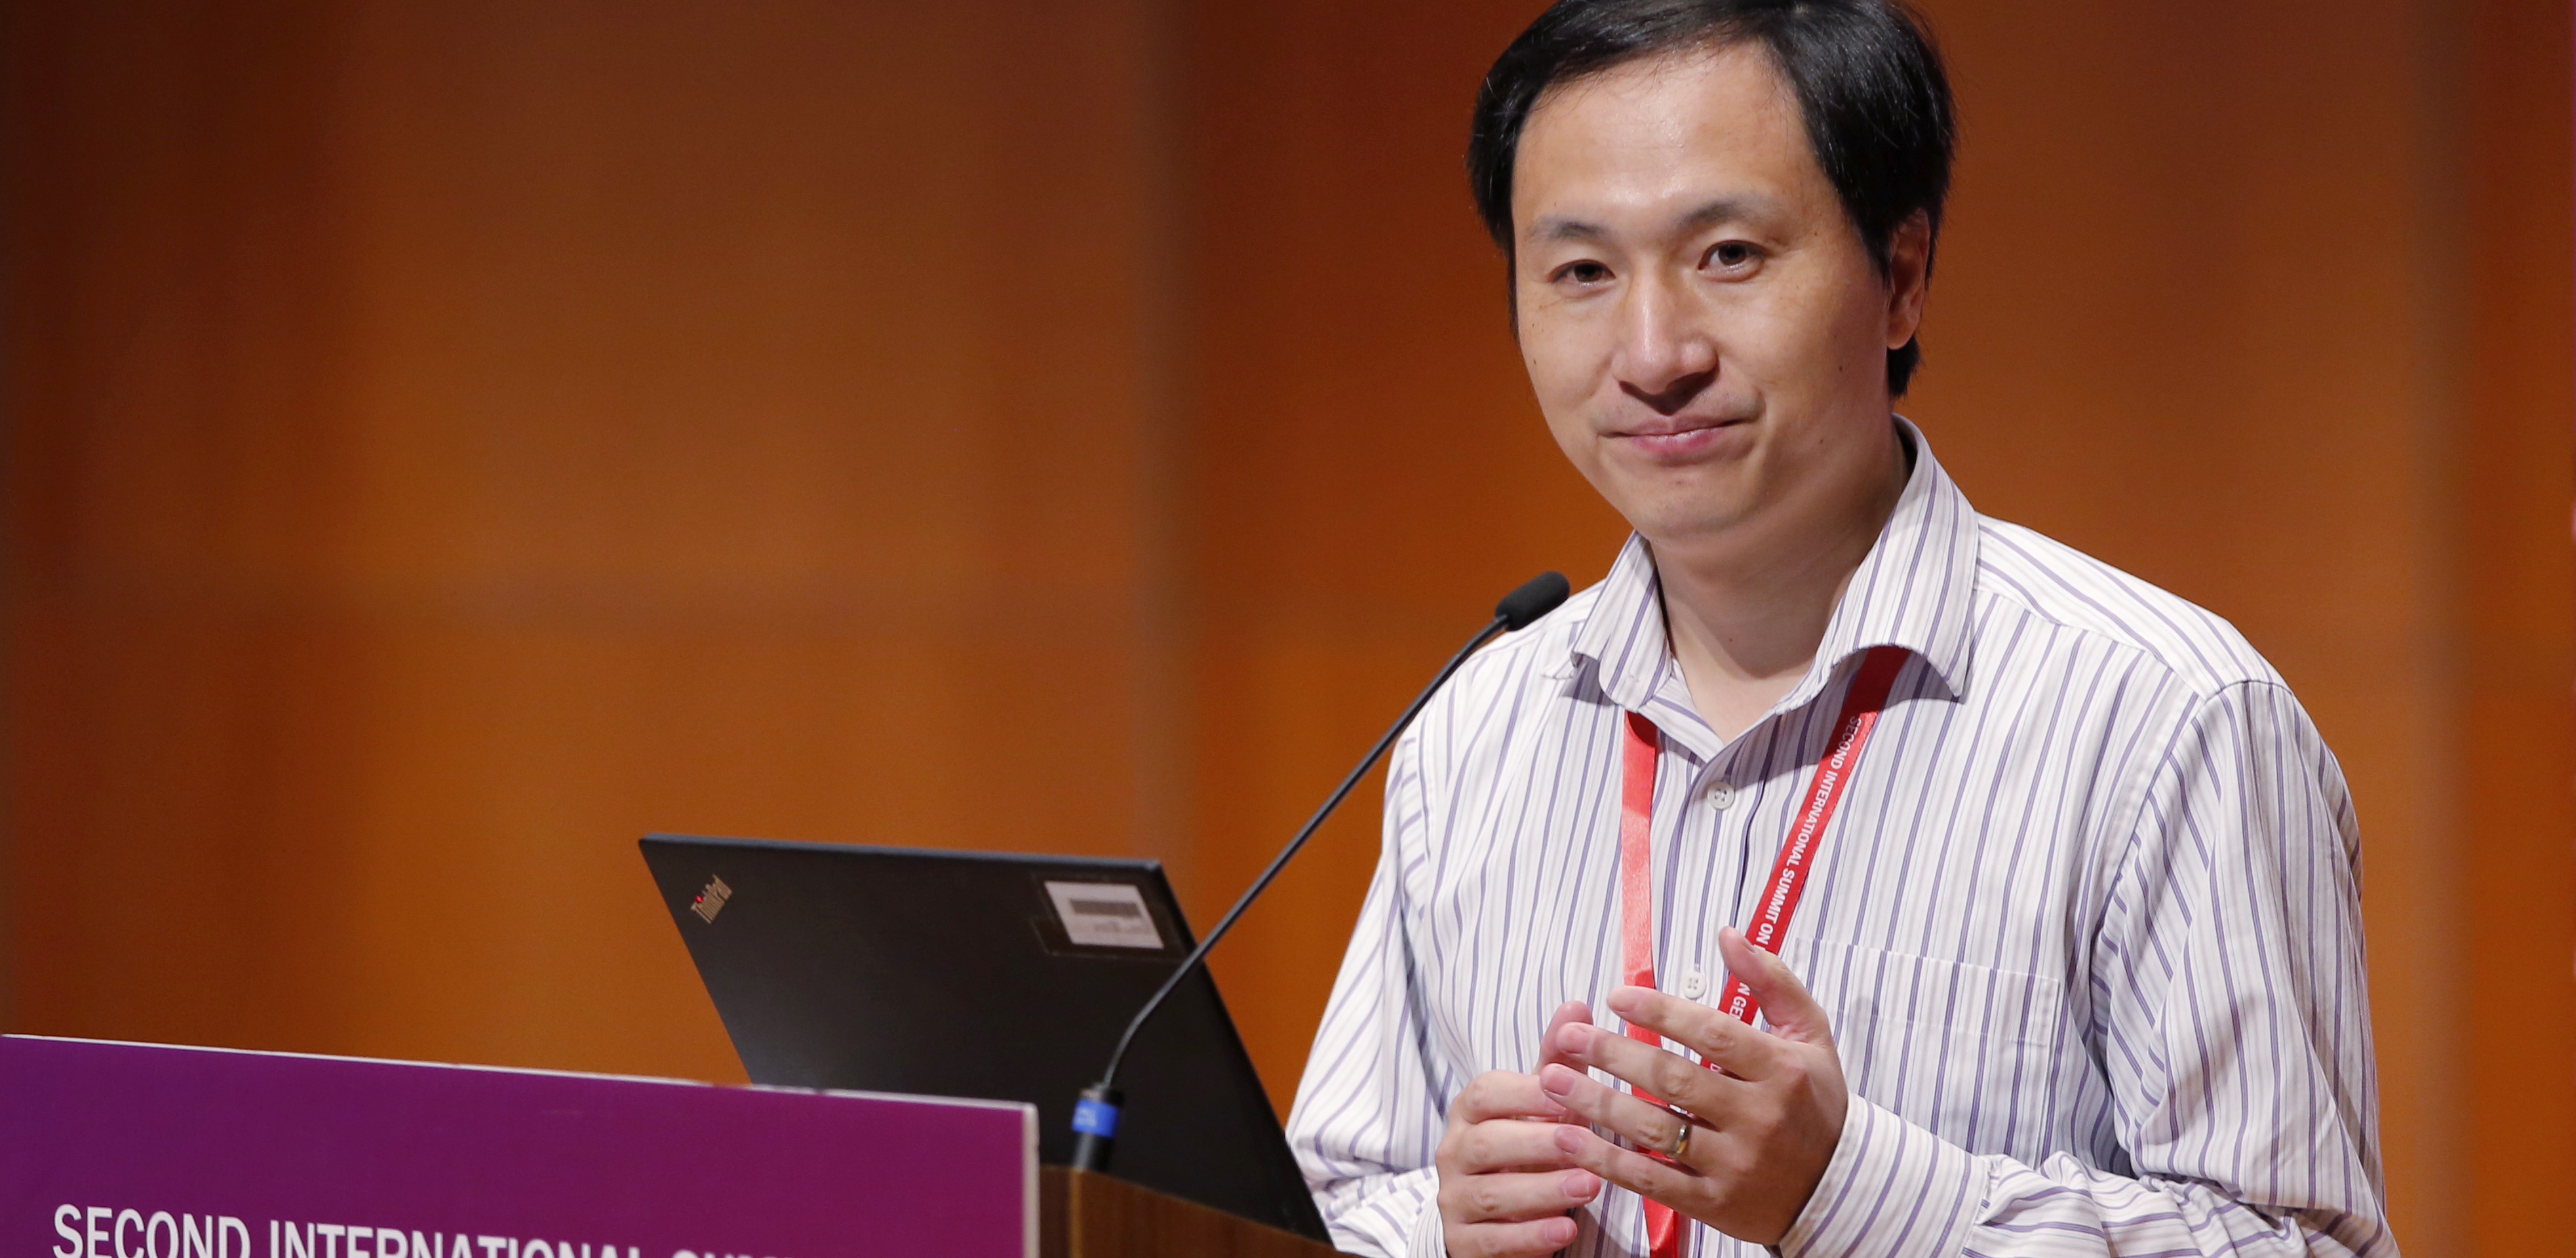 Gene edits to 'CRISPR babies' might have shortened their life expectancy...